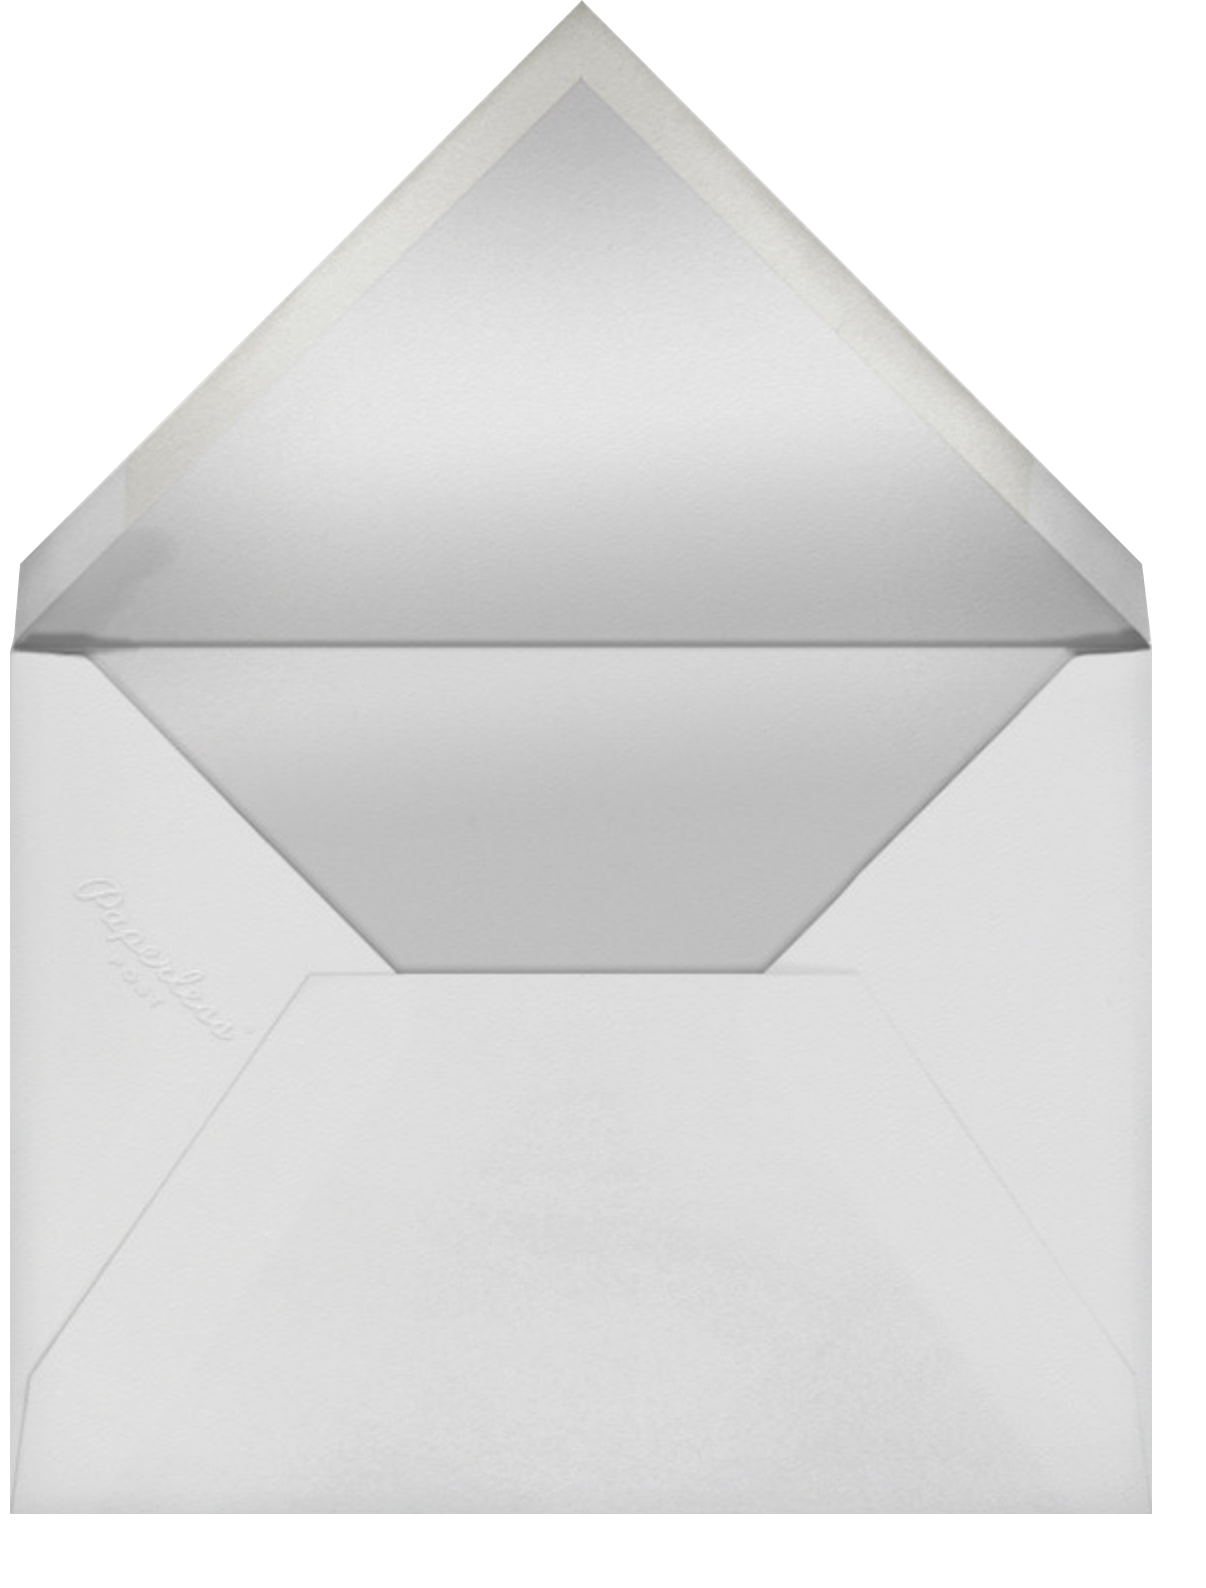 Safety First - Paperless Post - Baby shower - envelope back